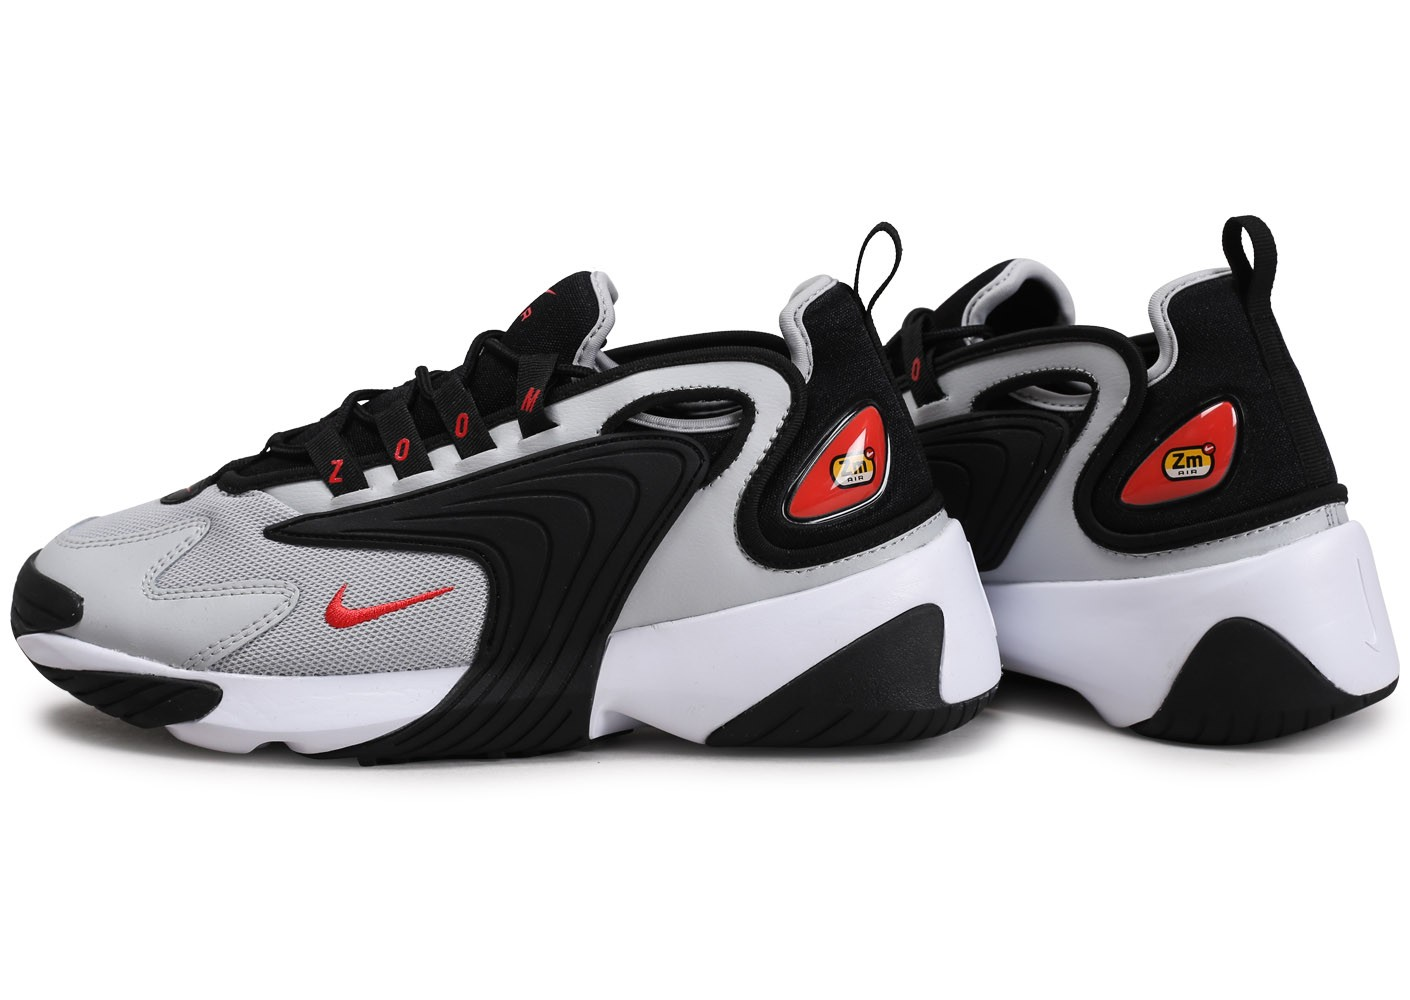 Nike Zoom 2K noir rouge blanc Chaussures Baskets homme